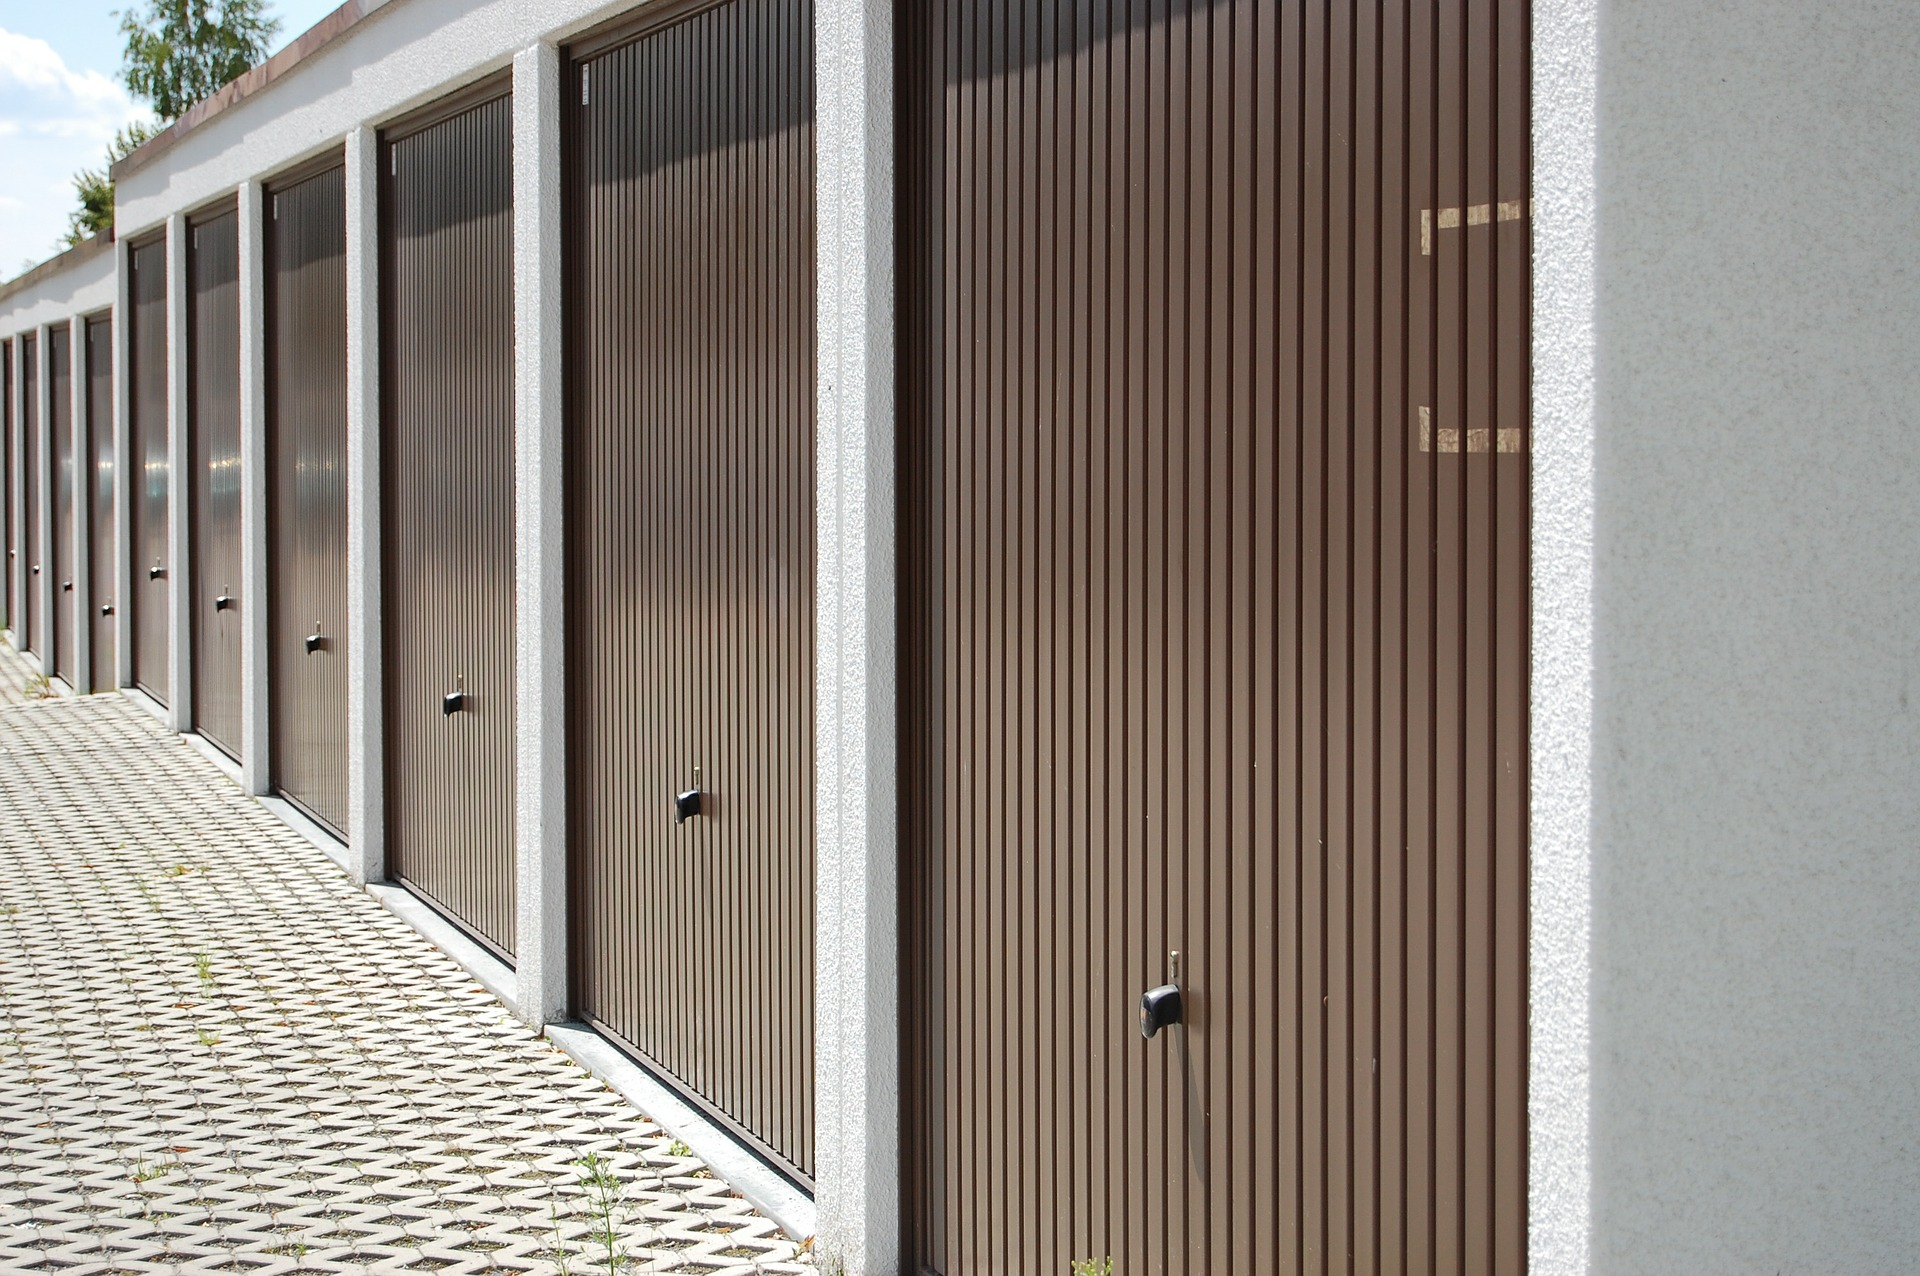 General Safety Tips For Using a Garage Door